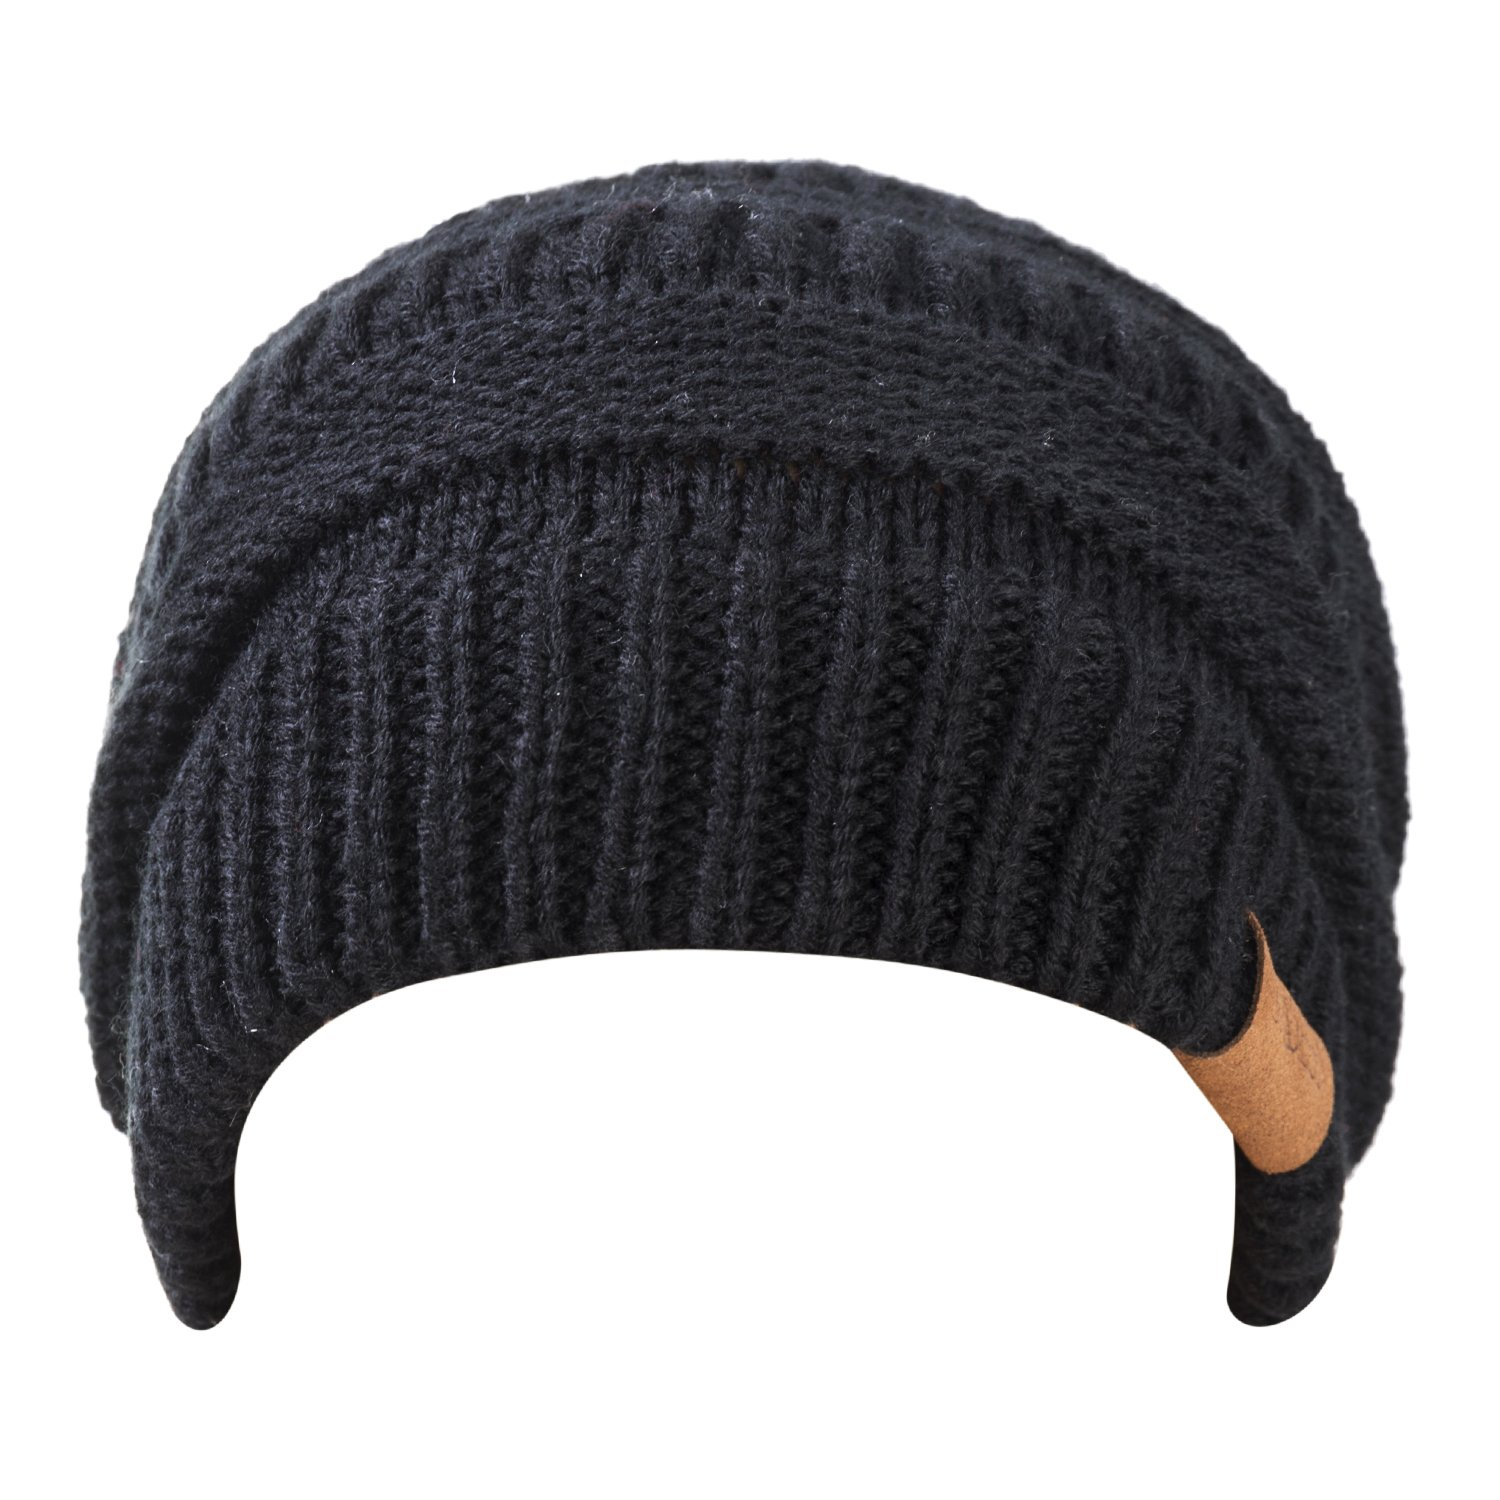 0947980b5db REDESS Slouchy Beanie Hat for Men and Women 2 Pack Winter Warm Chunky Soft  Oversized Cable ...